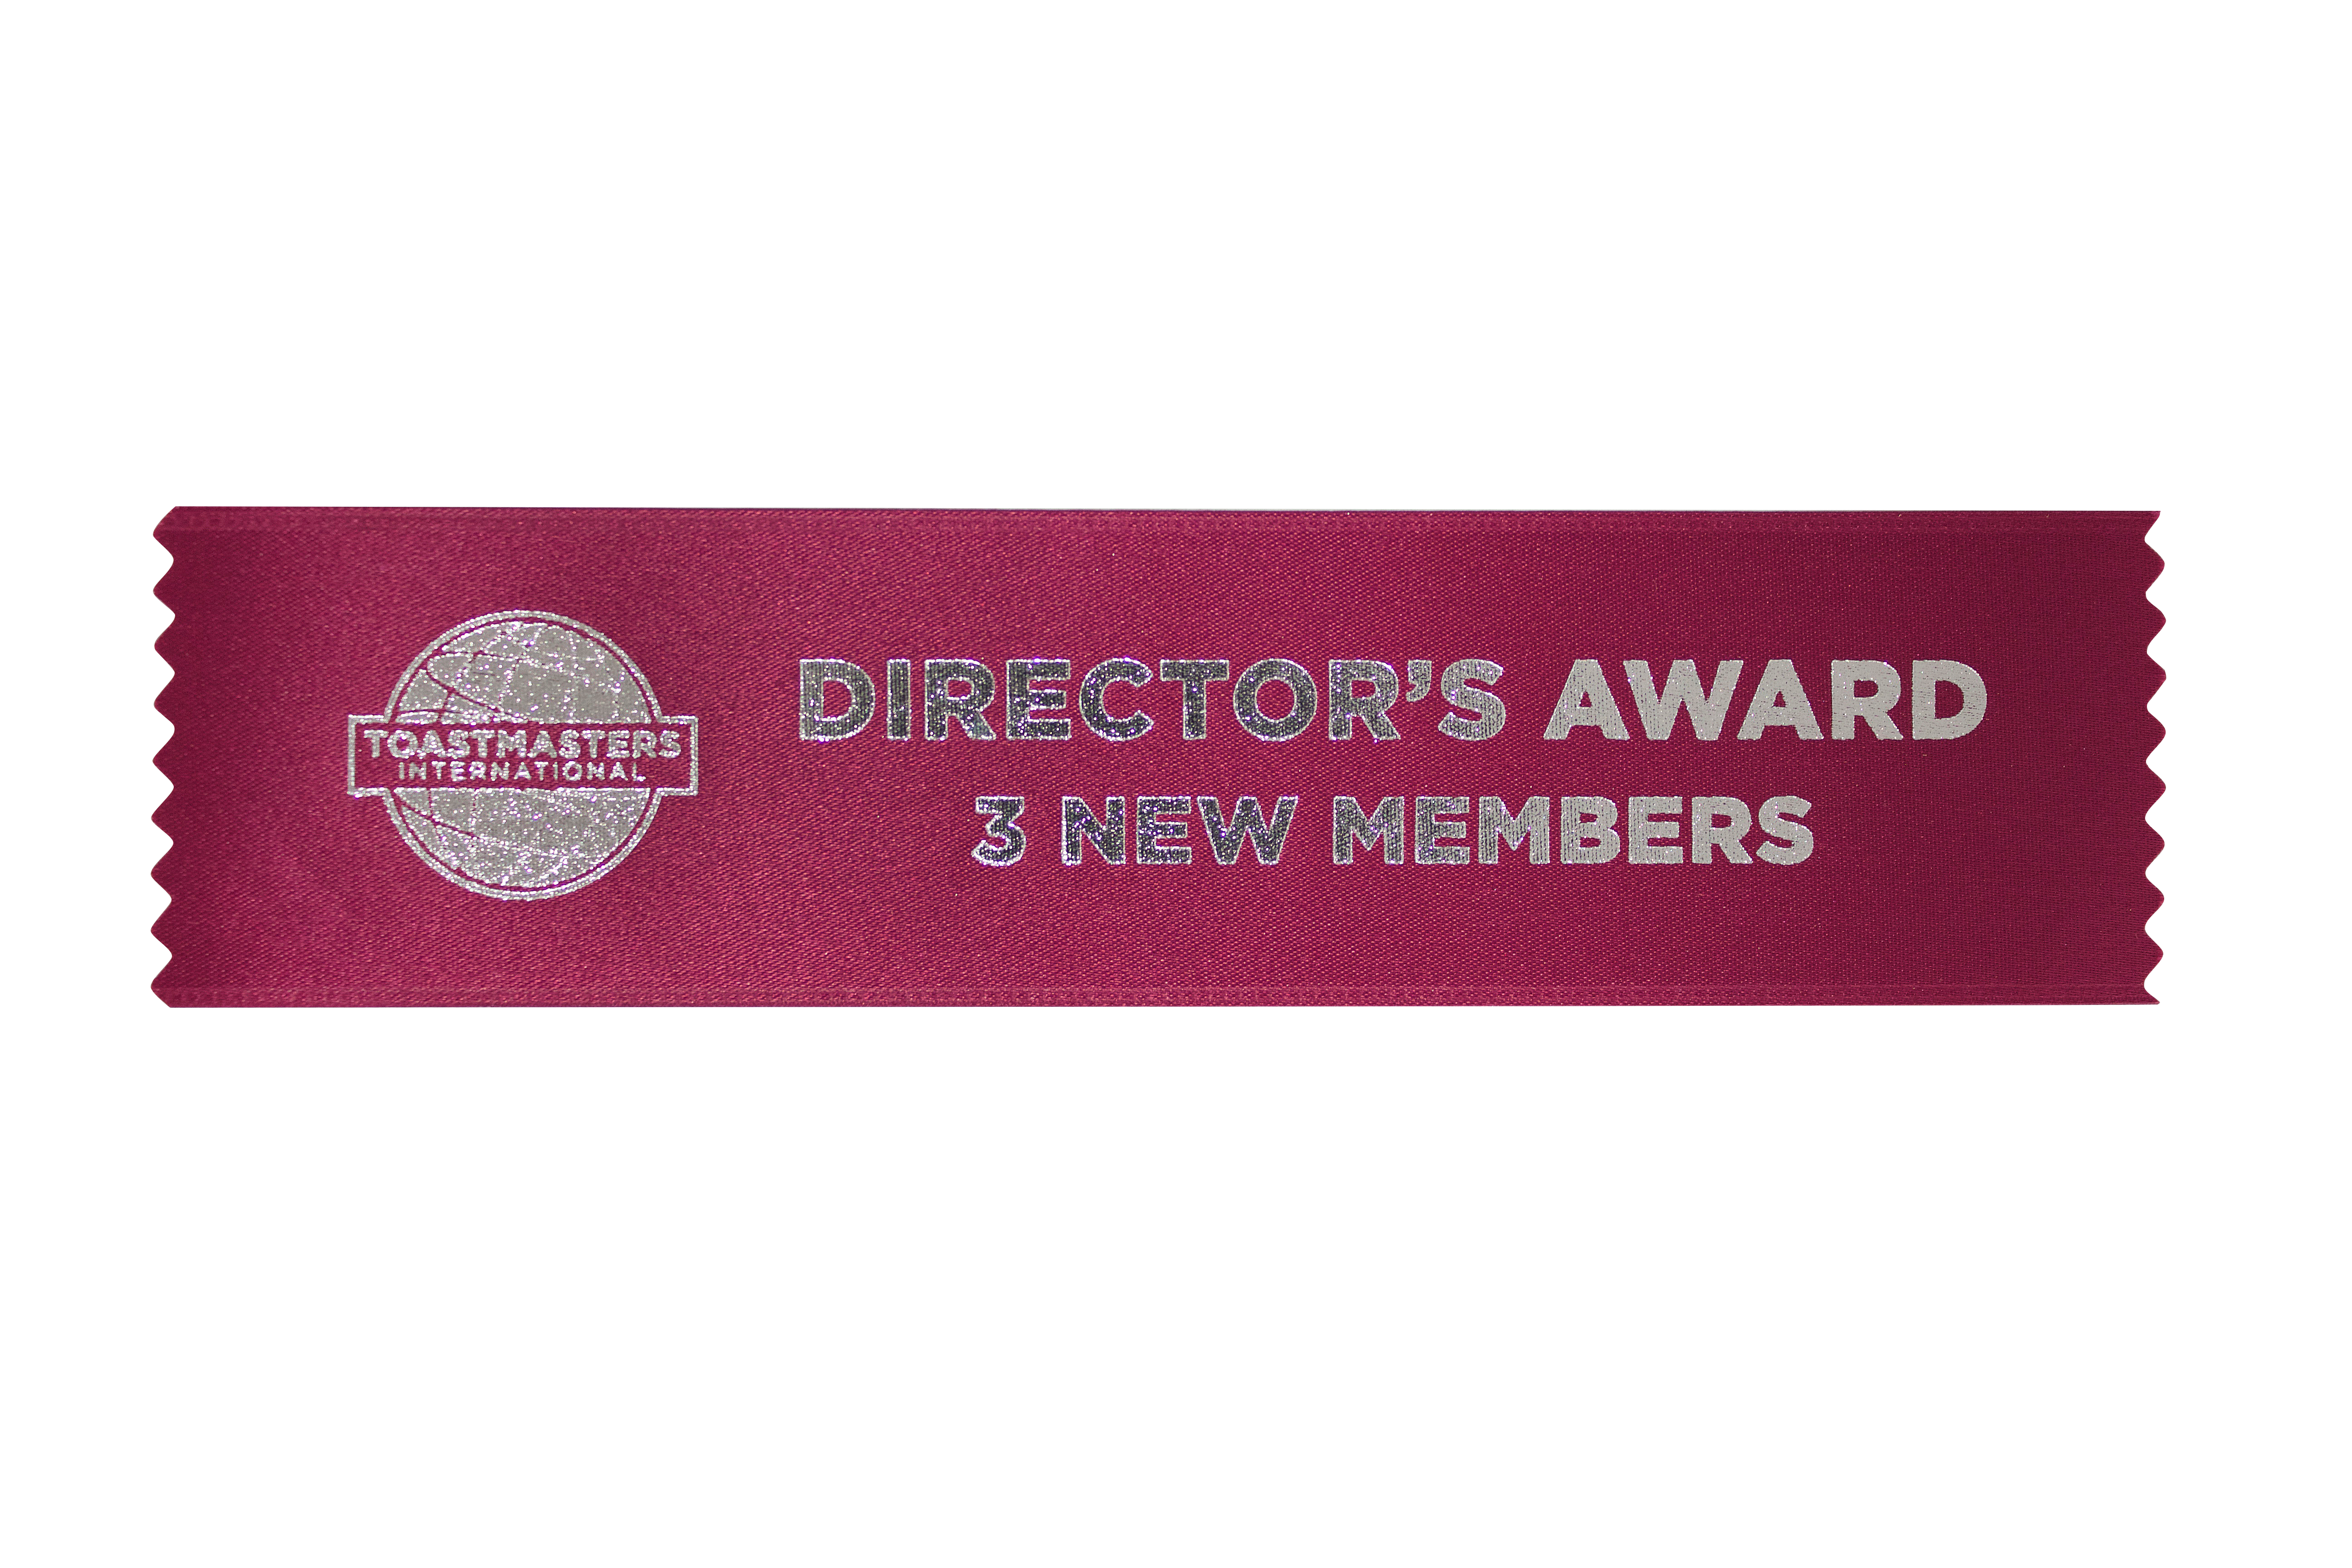 Director's Award 3 New Members (Set of 10)